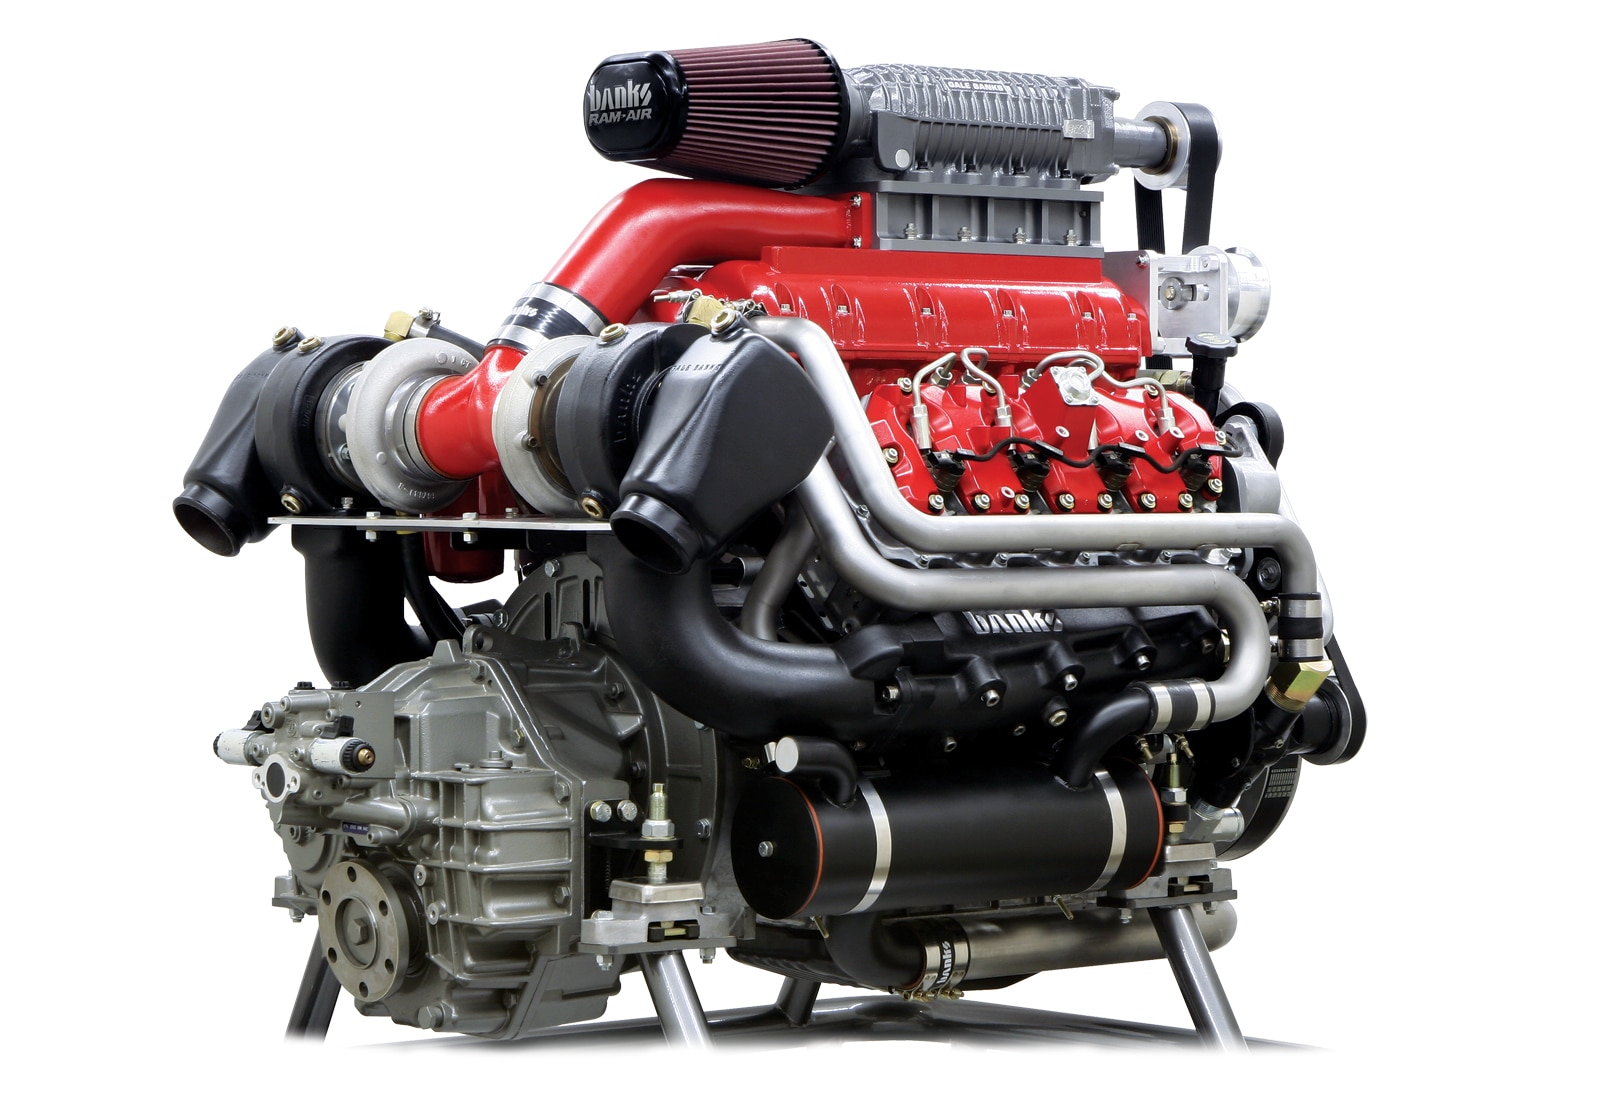 medium resolution of 6 6l duramax diesel engine right front angle